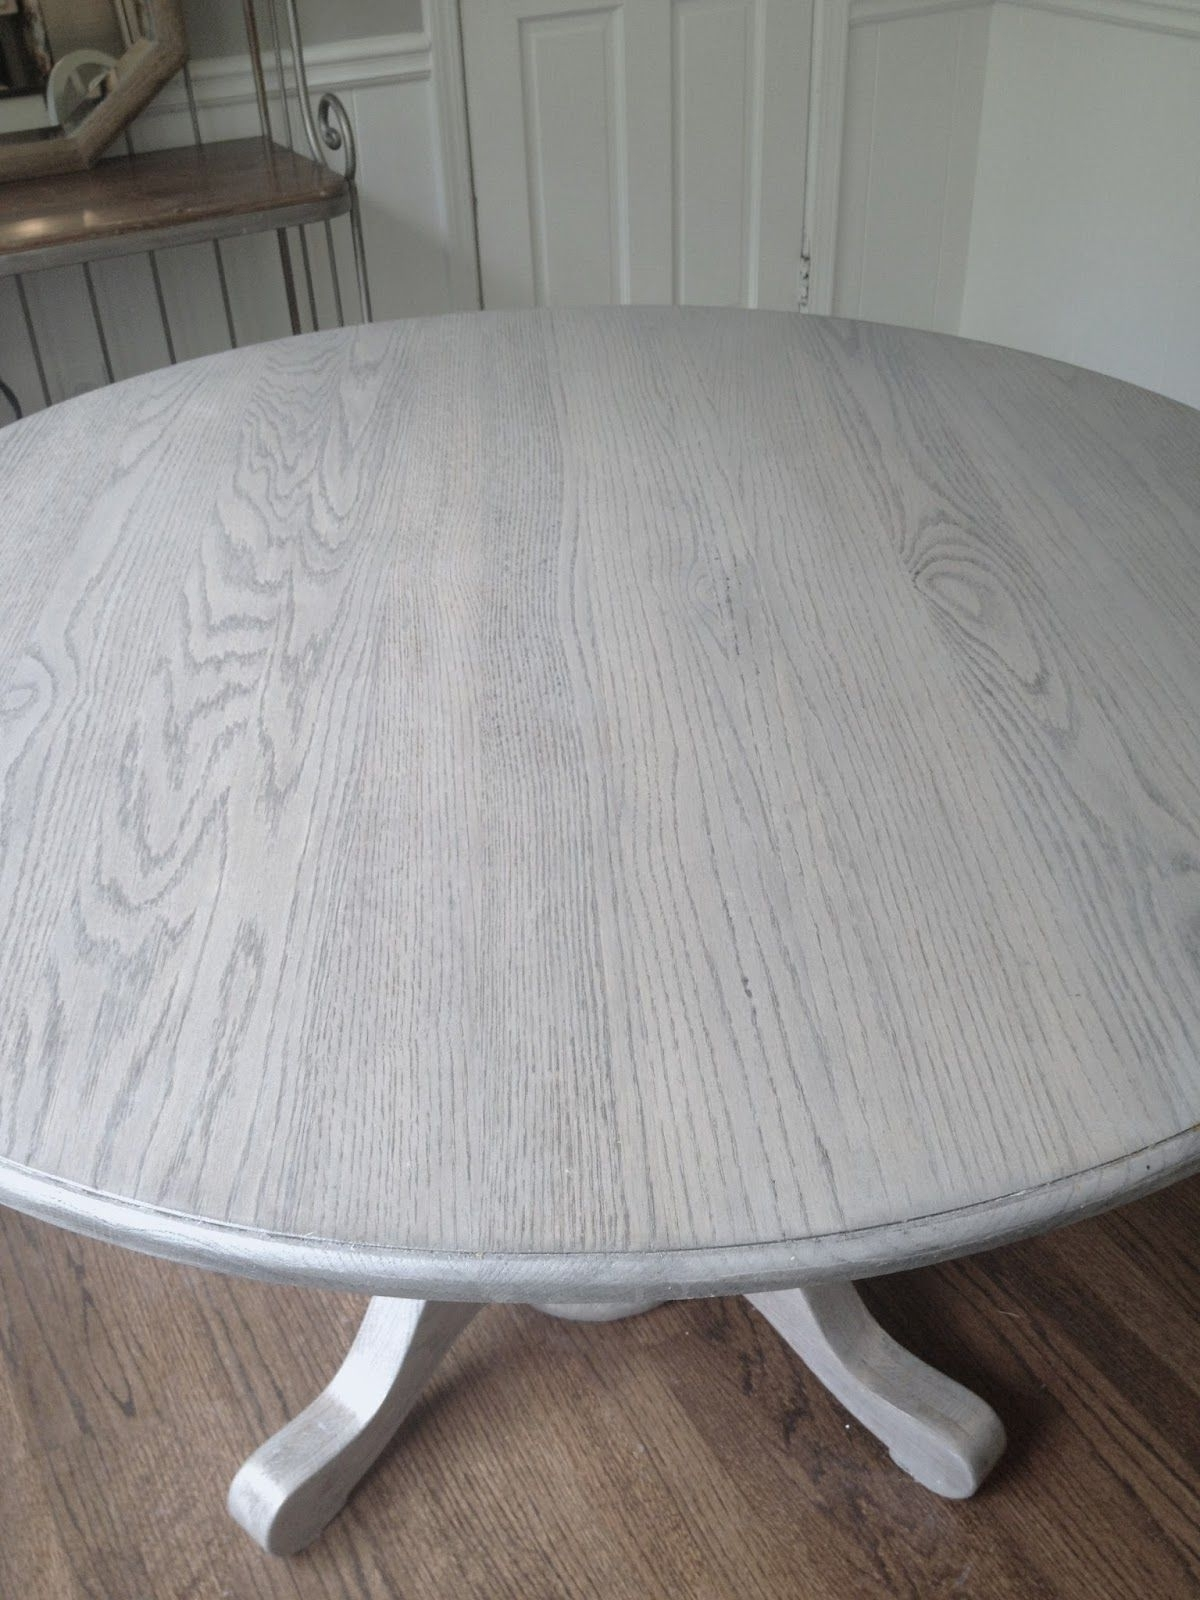 Refinishing Dining Table Gray!!long And Found: Diy Kitchen Table Within Latest Washed Old Oak & Waxed Black Legs Bar Tables (View 18 of 25)